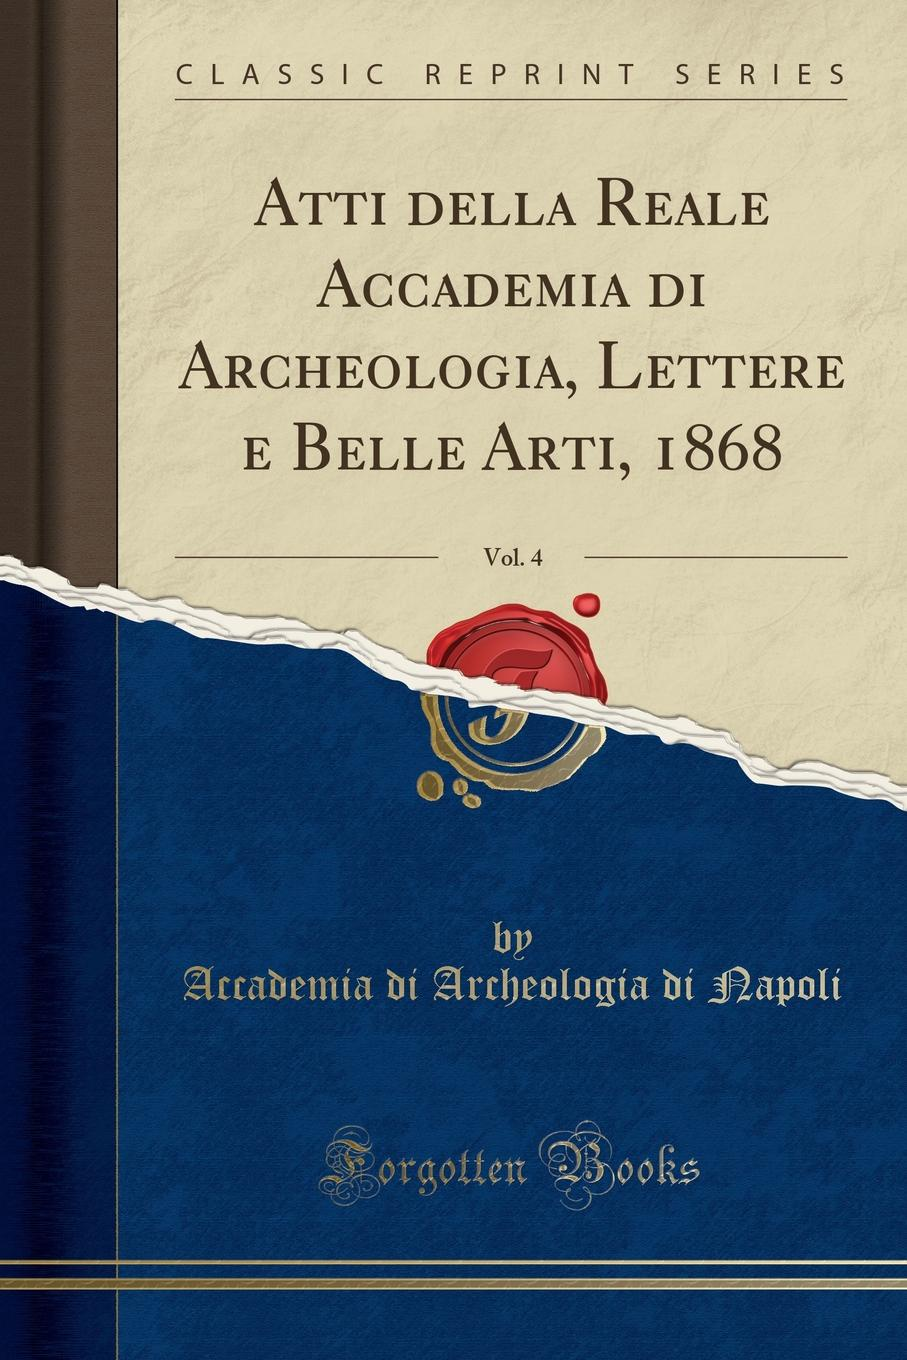 Accademia di Archeologia di Napoli Atti della Reale Accademia di Archeologia, Lettere e Belle Arti, 1868, Vol. 4 (Classic Reprint) networks of nazi persecution bureaucracy business and the organization of the holocaust